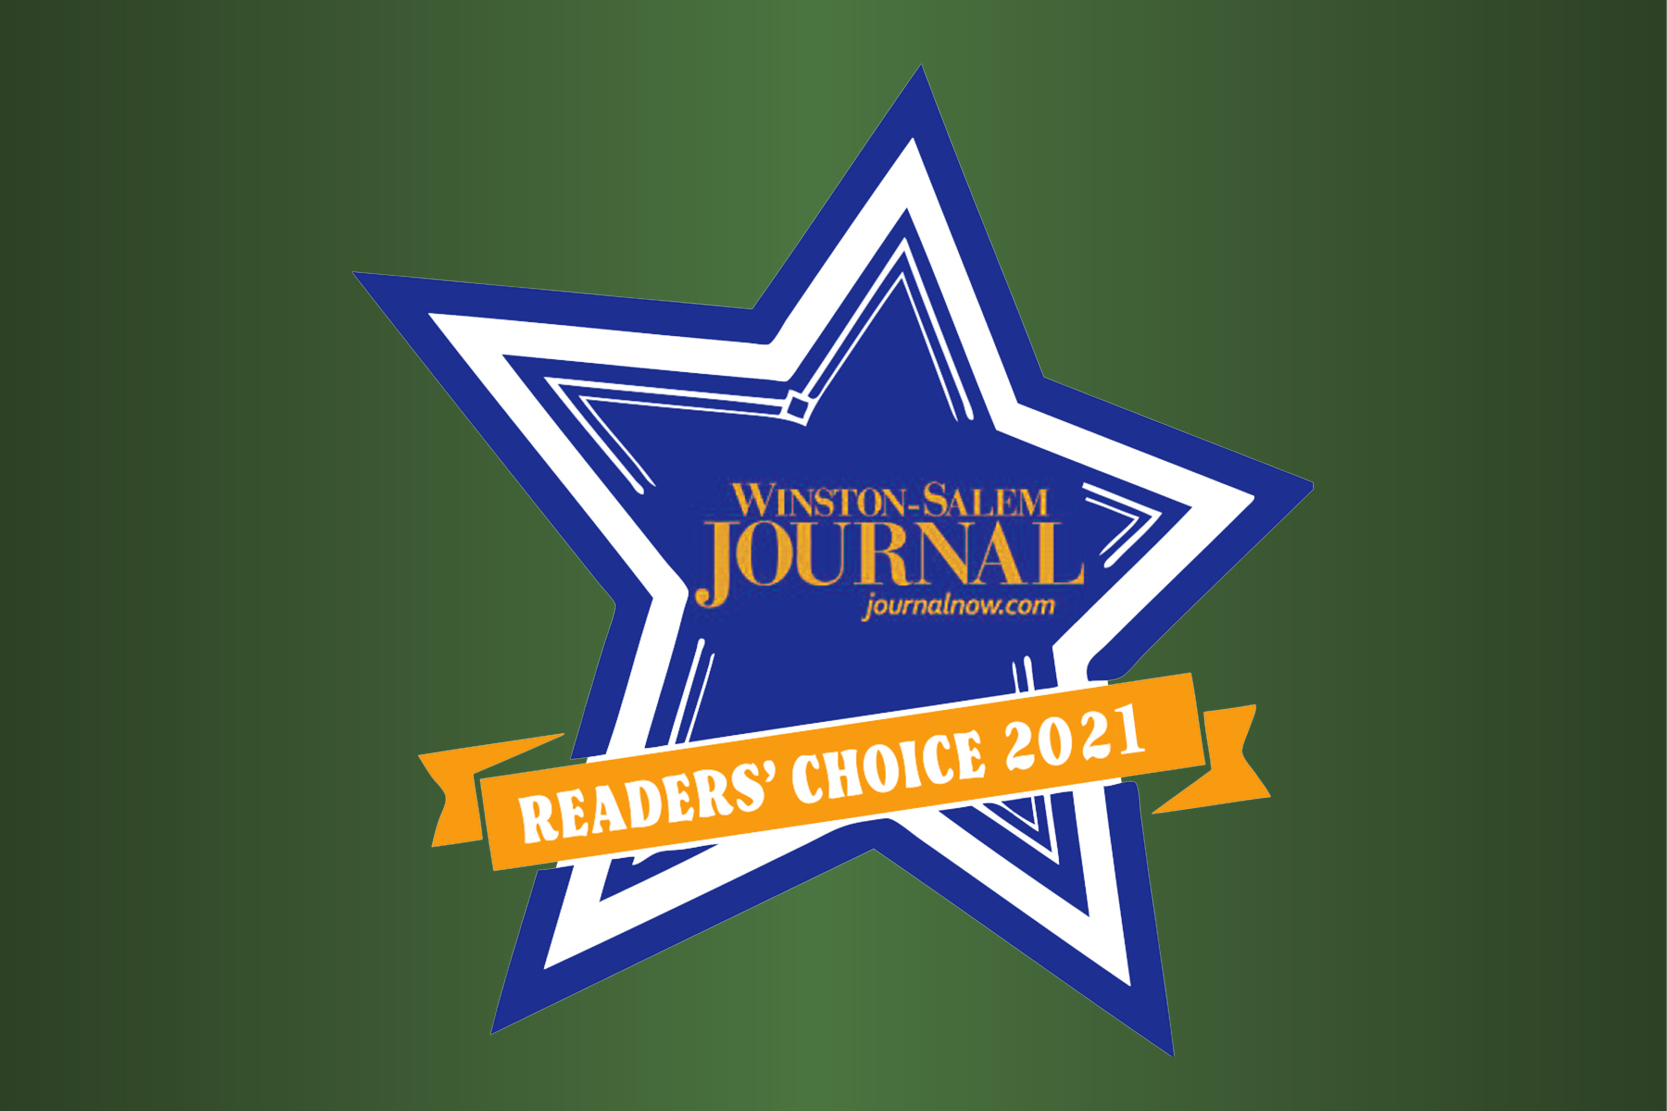 WS Journal Readers Choice Nominations